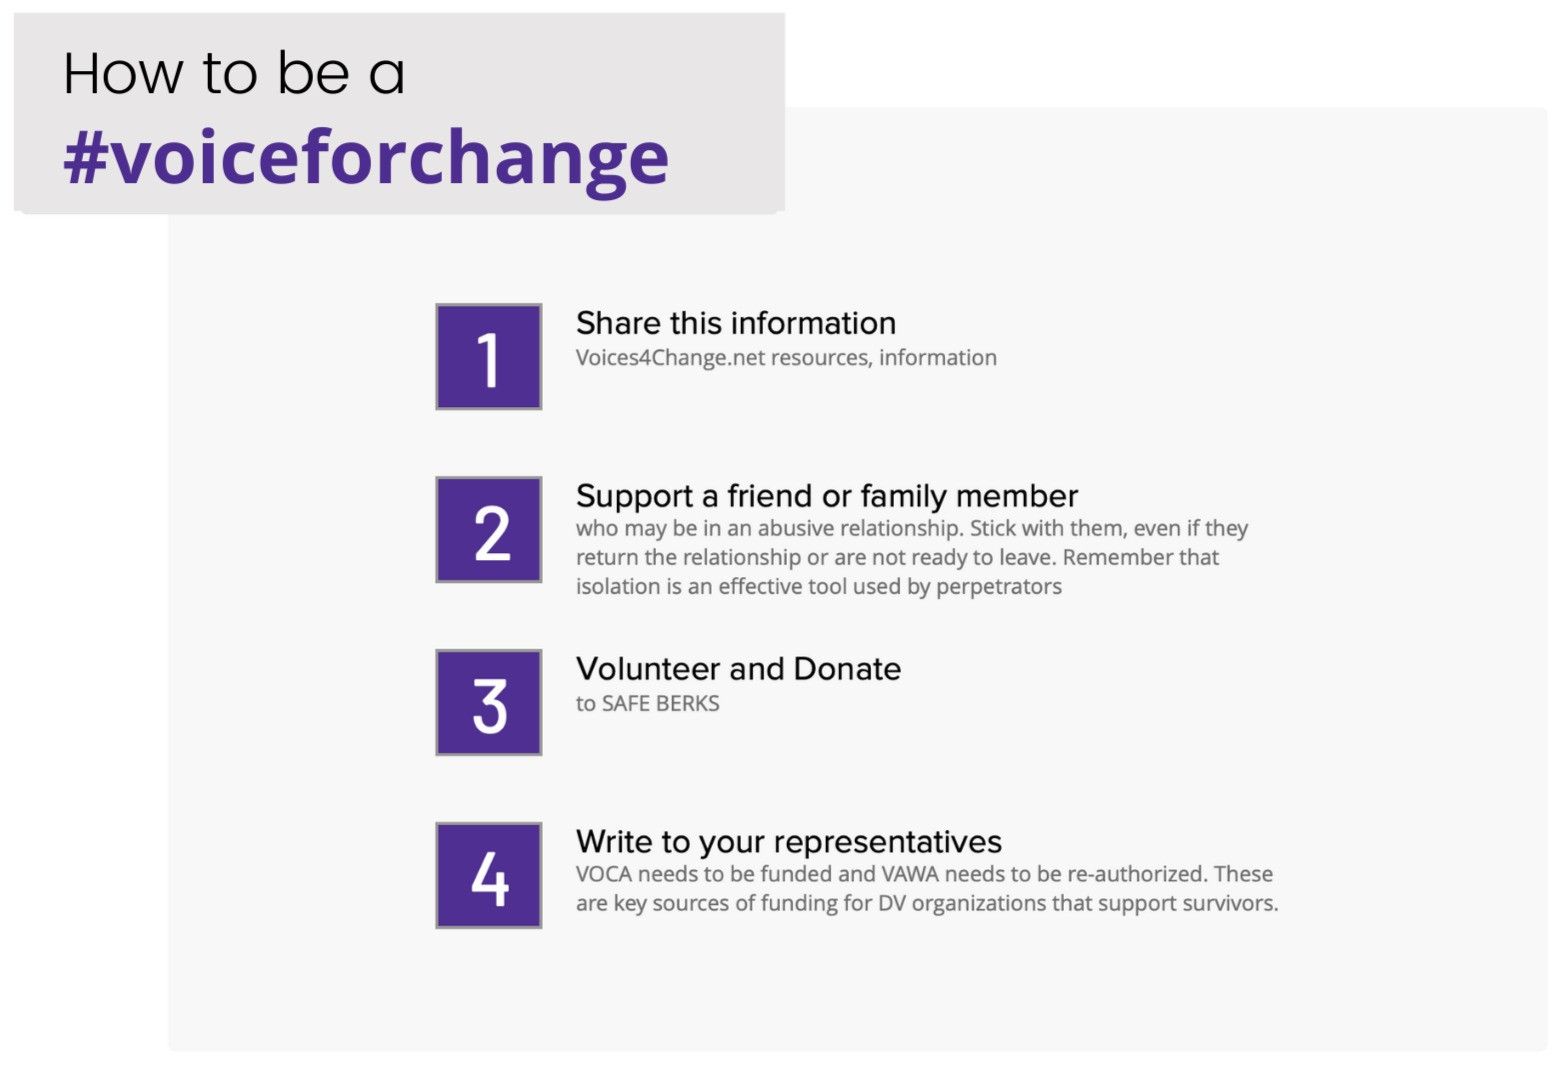 How to be a #voices4change